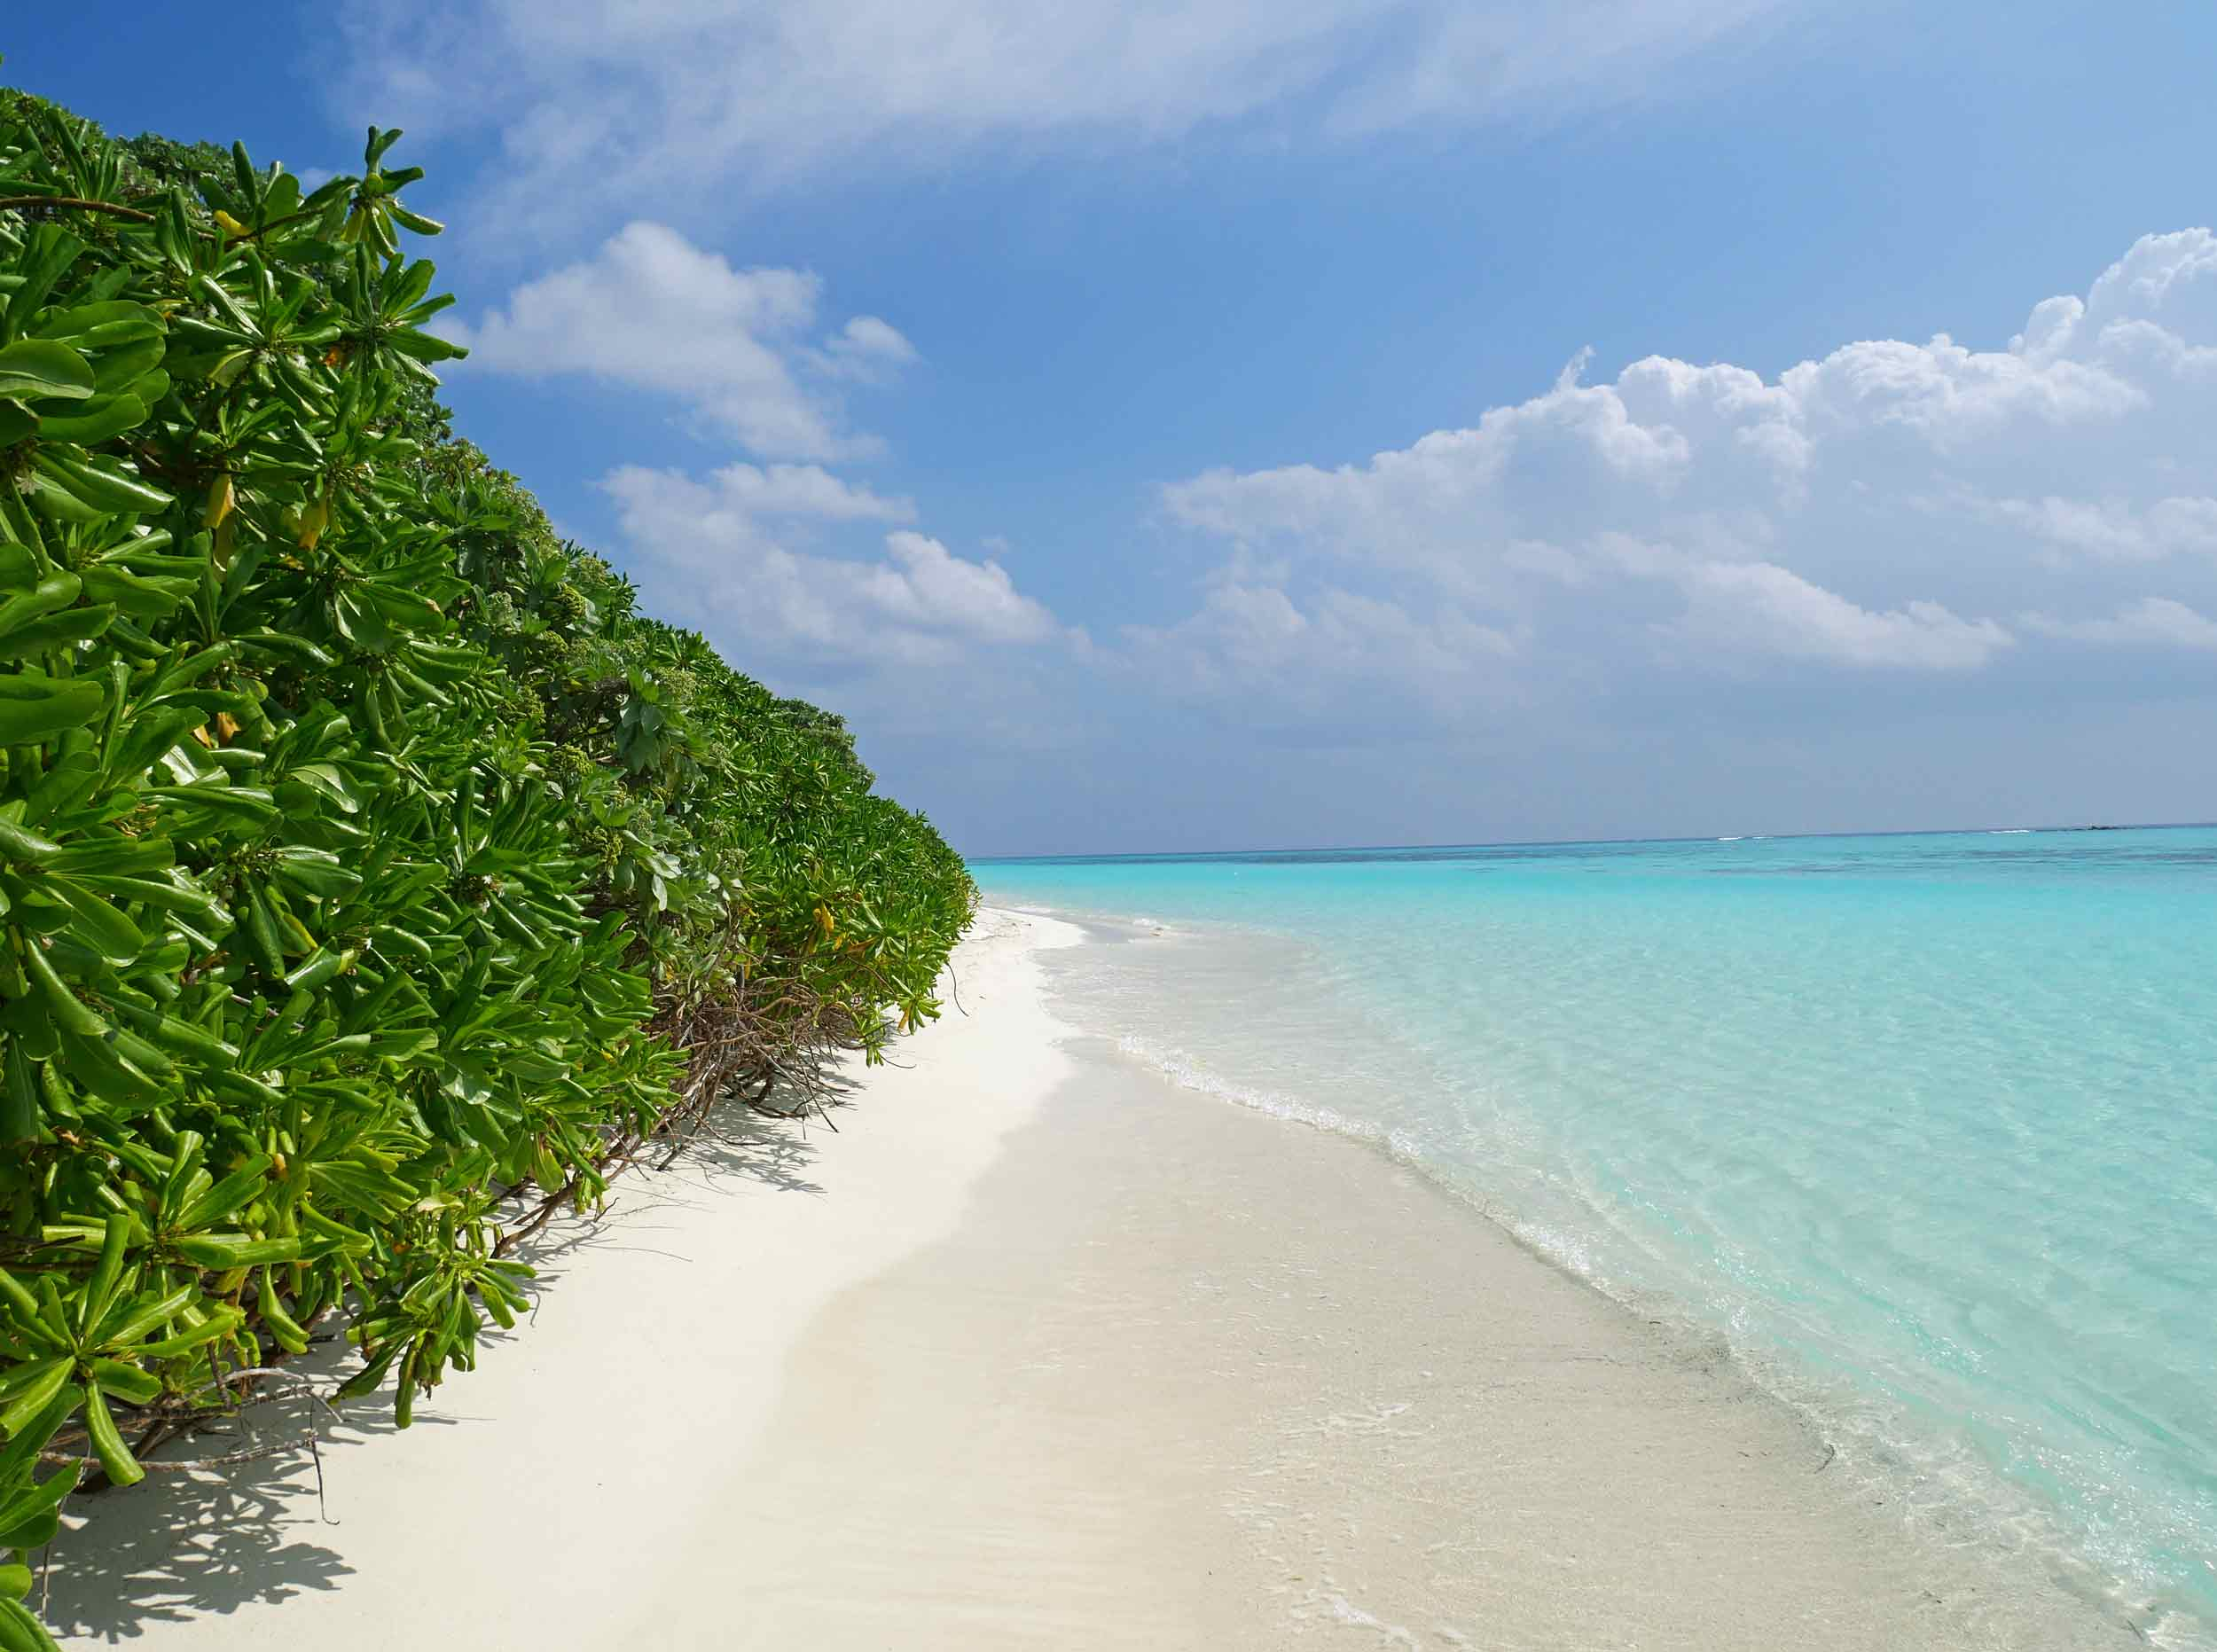 The white sand is a product of all the broken down coral that makes up the Maldives (Dec 6).